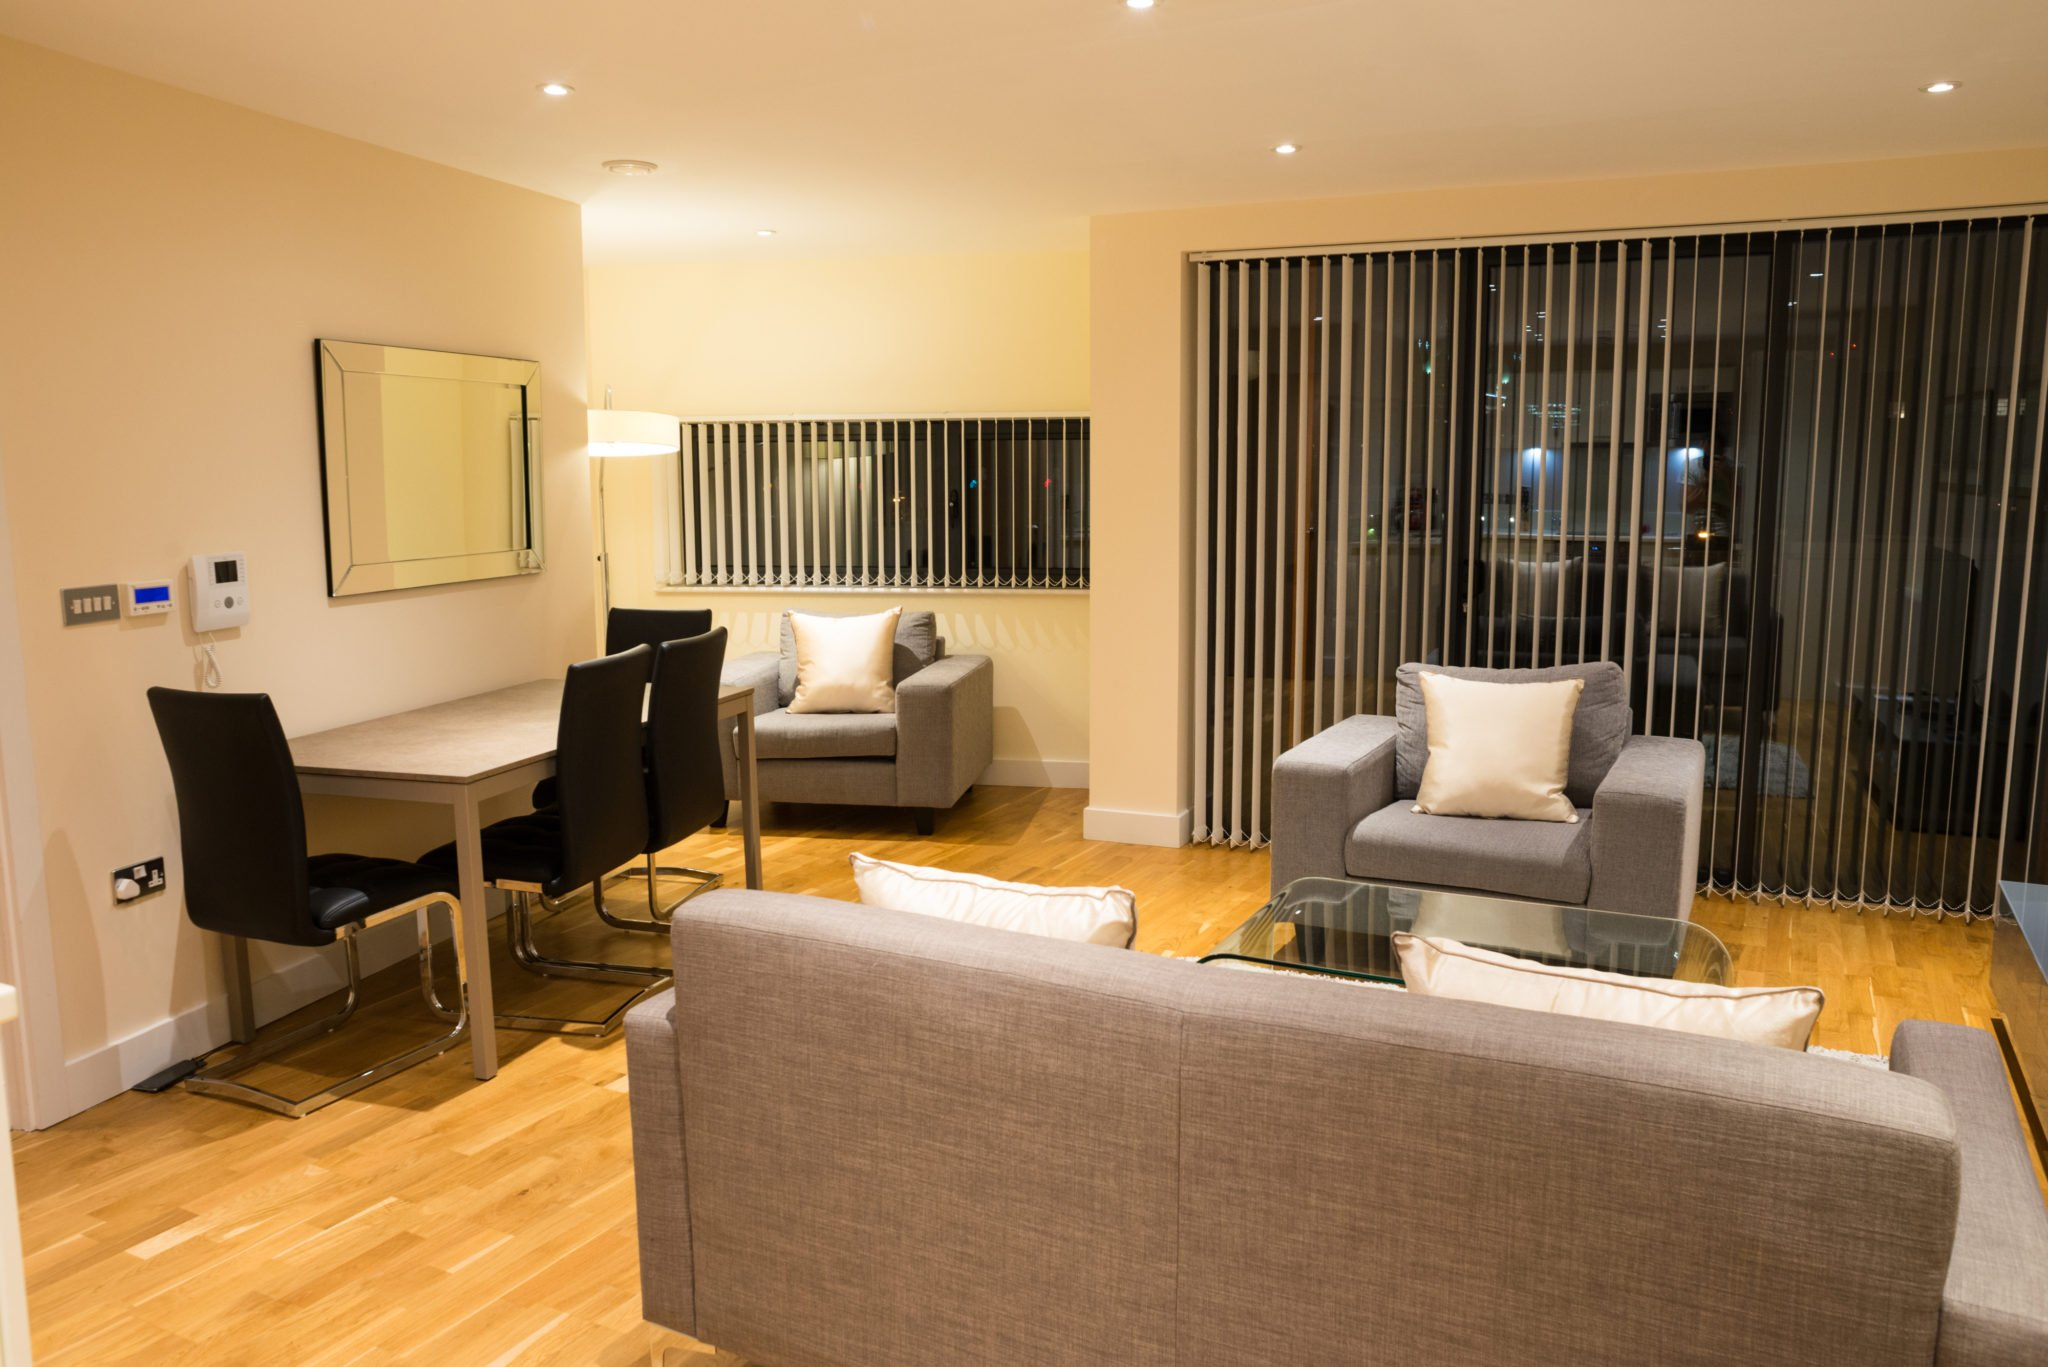 City Of London Serviced Accommodation available now! Book Cheap Short Let Arc House Apartments in the City of London, with Free Wi-Fi, Fully equipped kitchen & a Welcome Basket! Book Now! Call: 0208 6913920